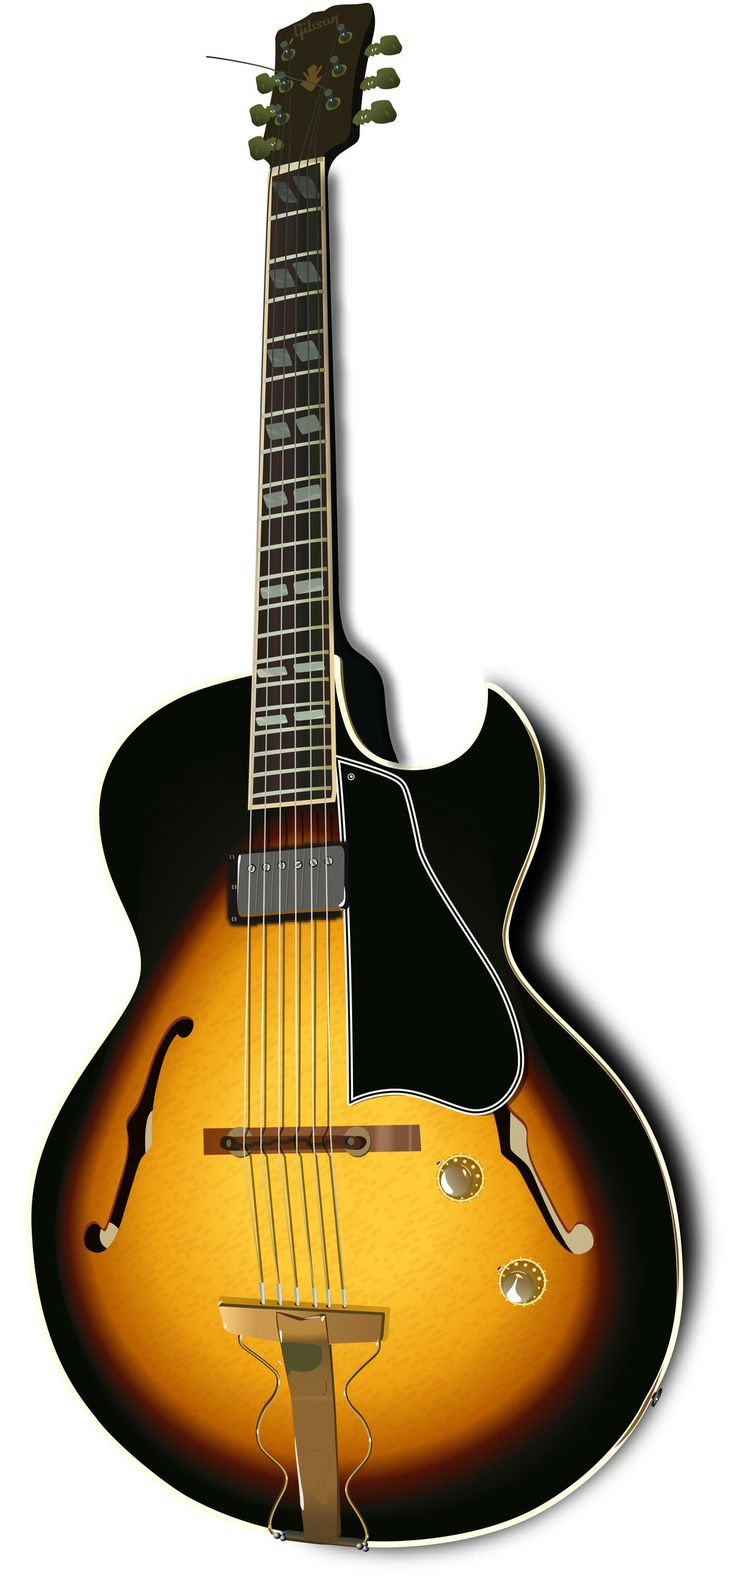 Gibson Guitar by Davidramsey03 Learn To Play Authentic Guitar For Any Style Of Music - Beginner Thru Professional at: http://www.ChordMelodyGuitarMusic.com